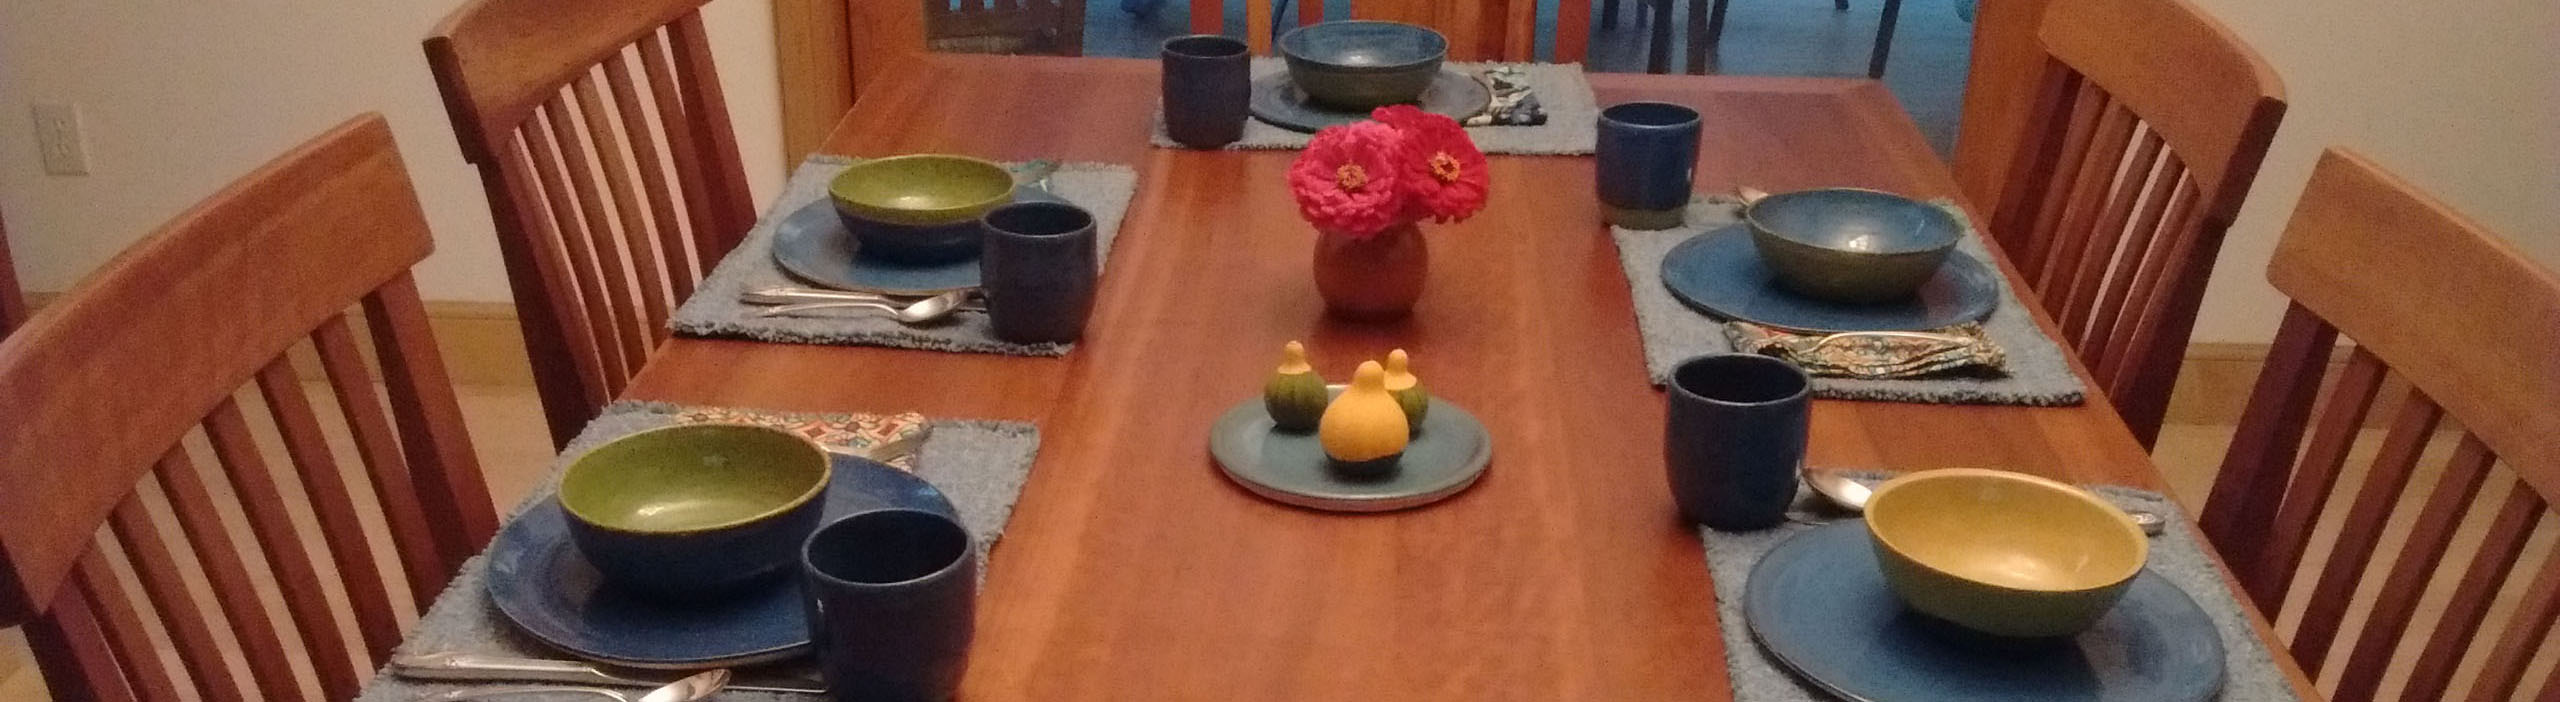 Table set with Sledding Hill pottery